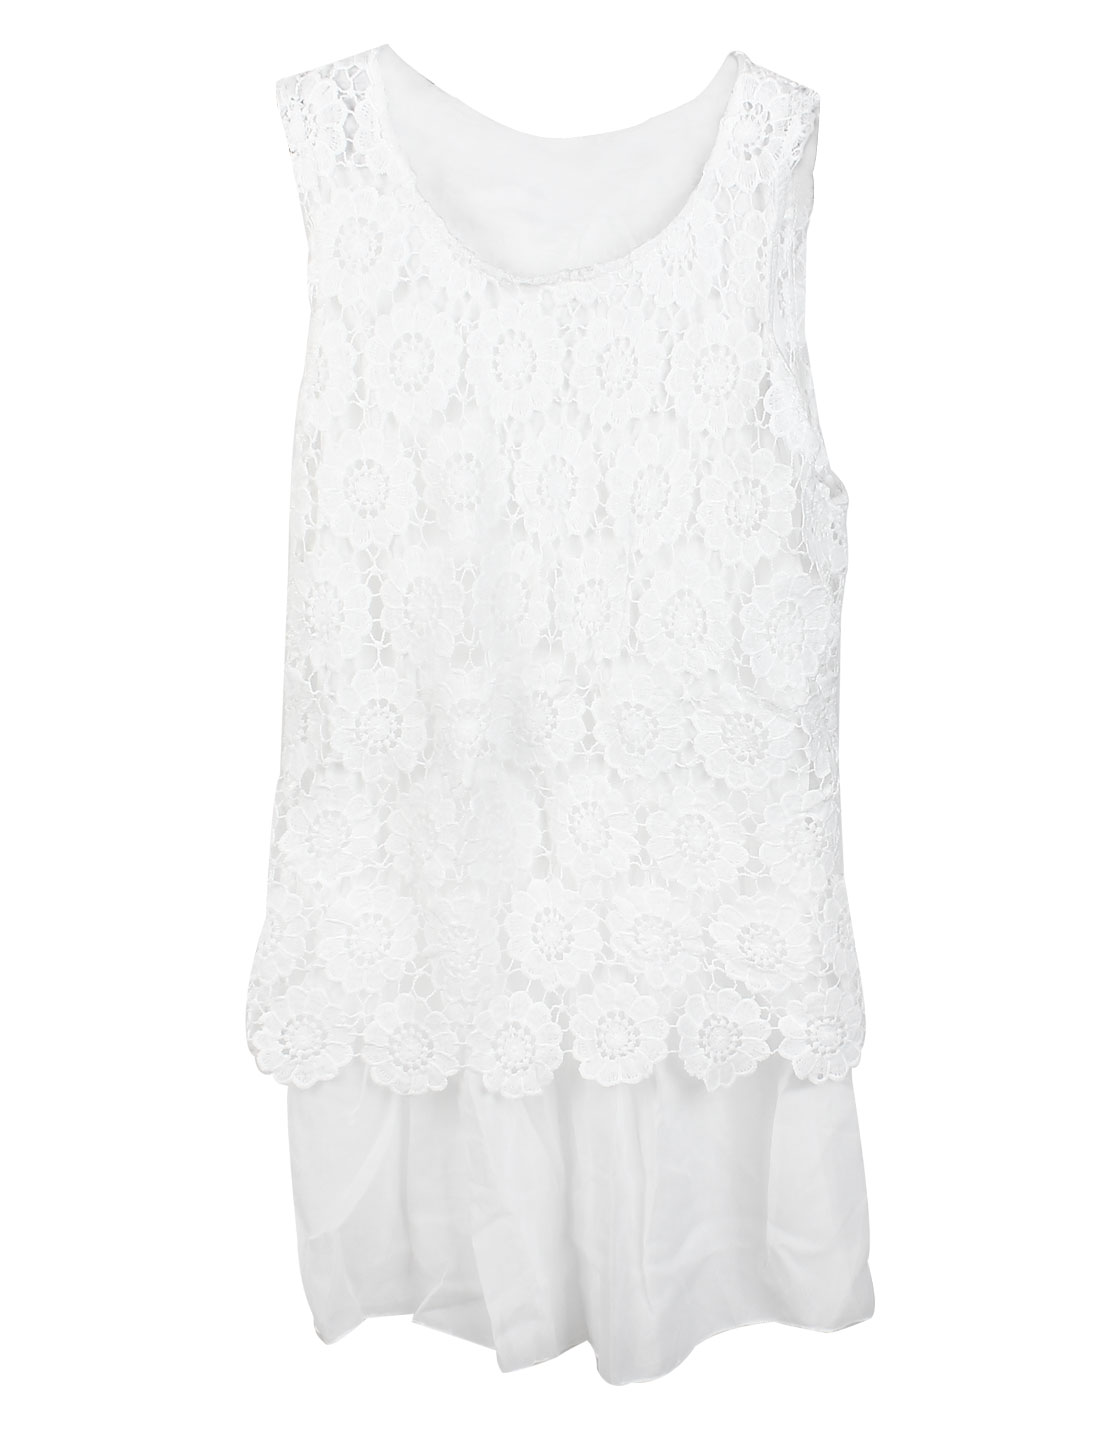 Lady Round Neck Sleeveless Crochet Overlay Tunic Top White XS